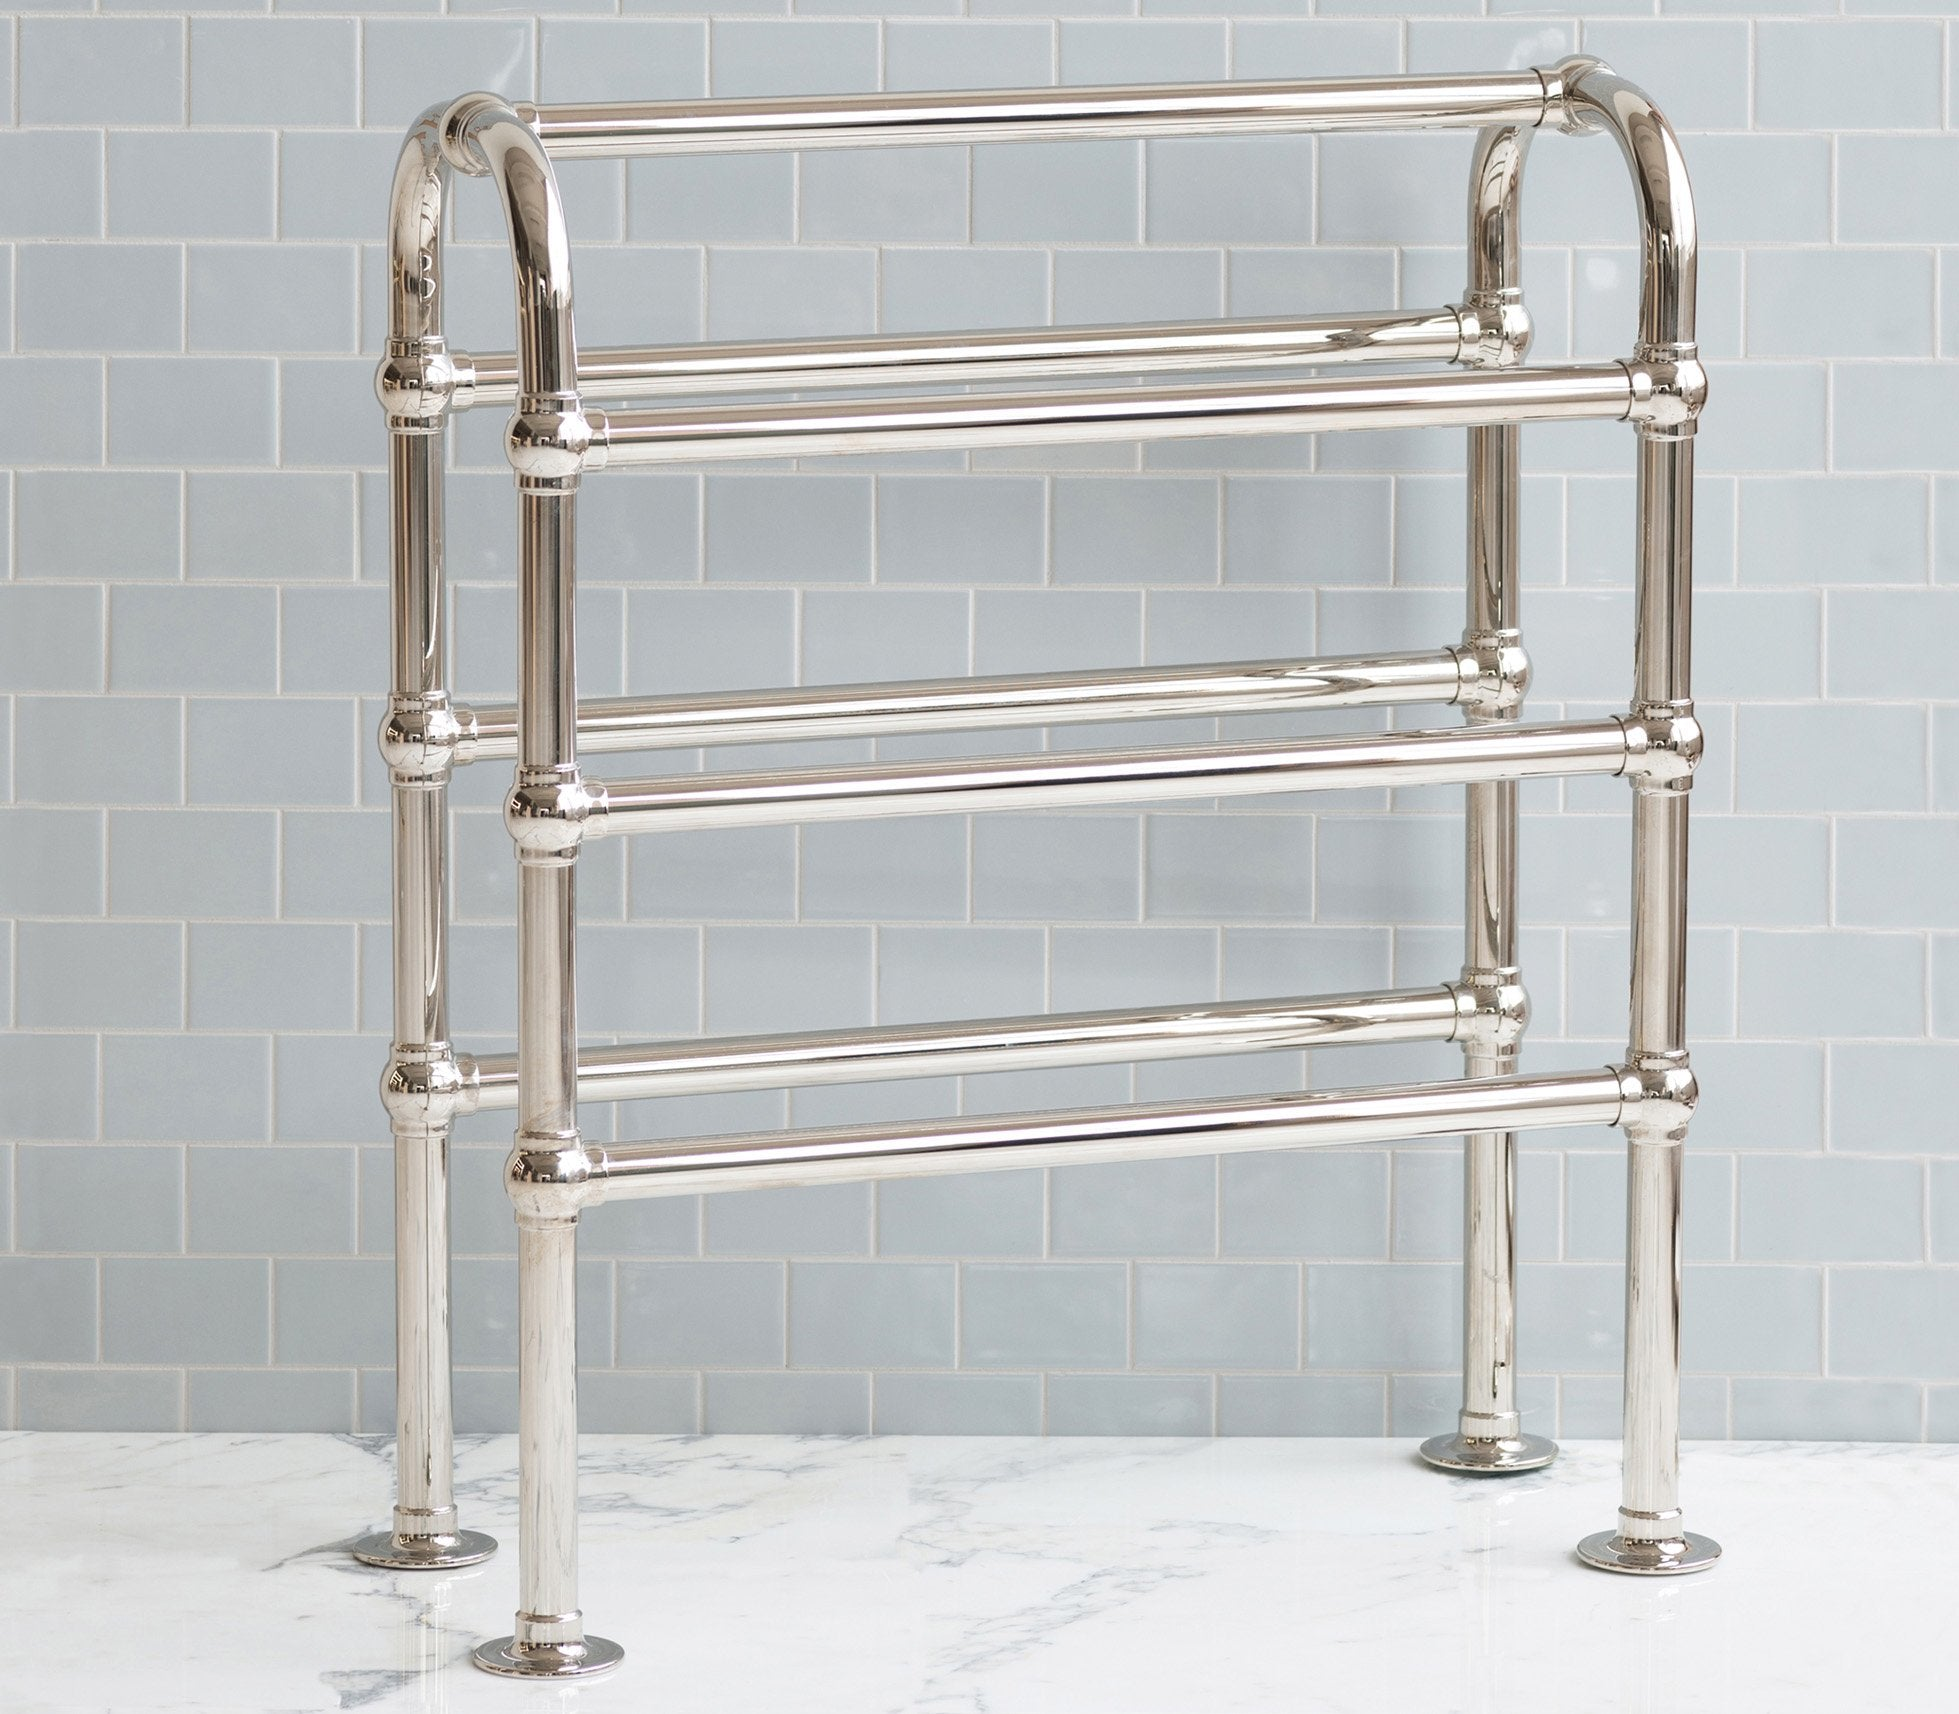 Classic Towel Warmer Towel Horse Product Image 2